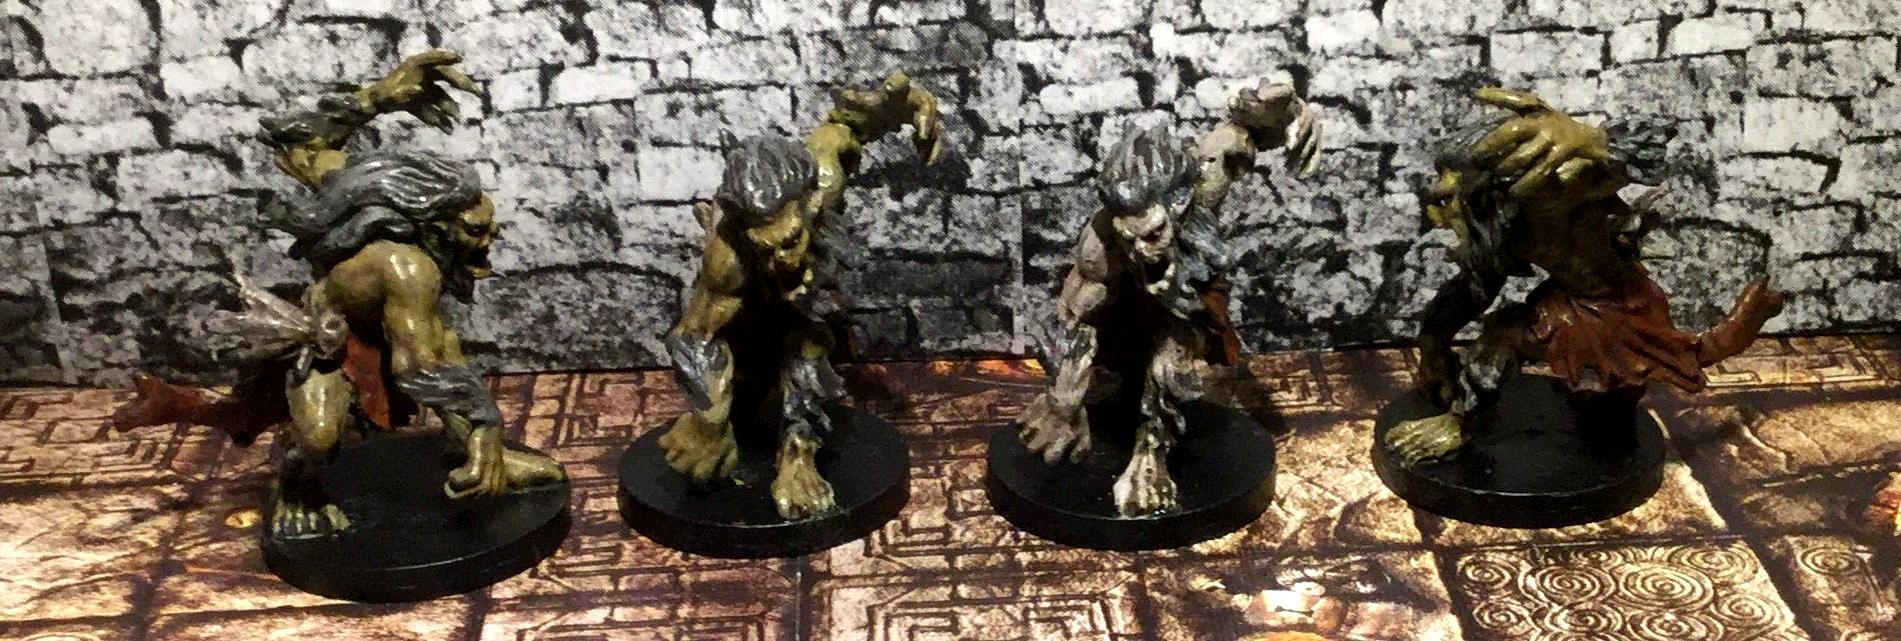 Descent, Ffg, Oath of the Outcast - Beastmen